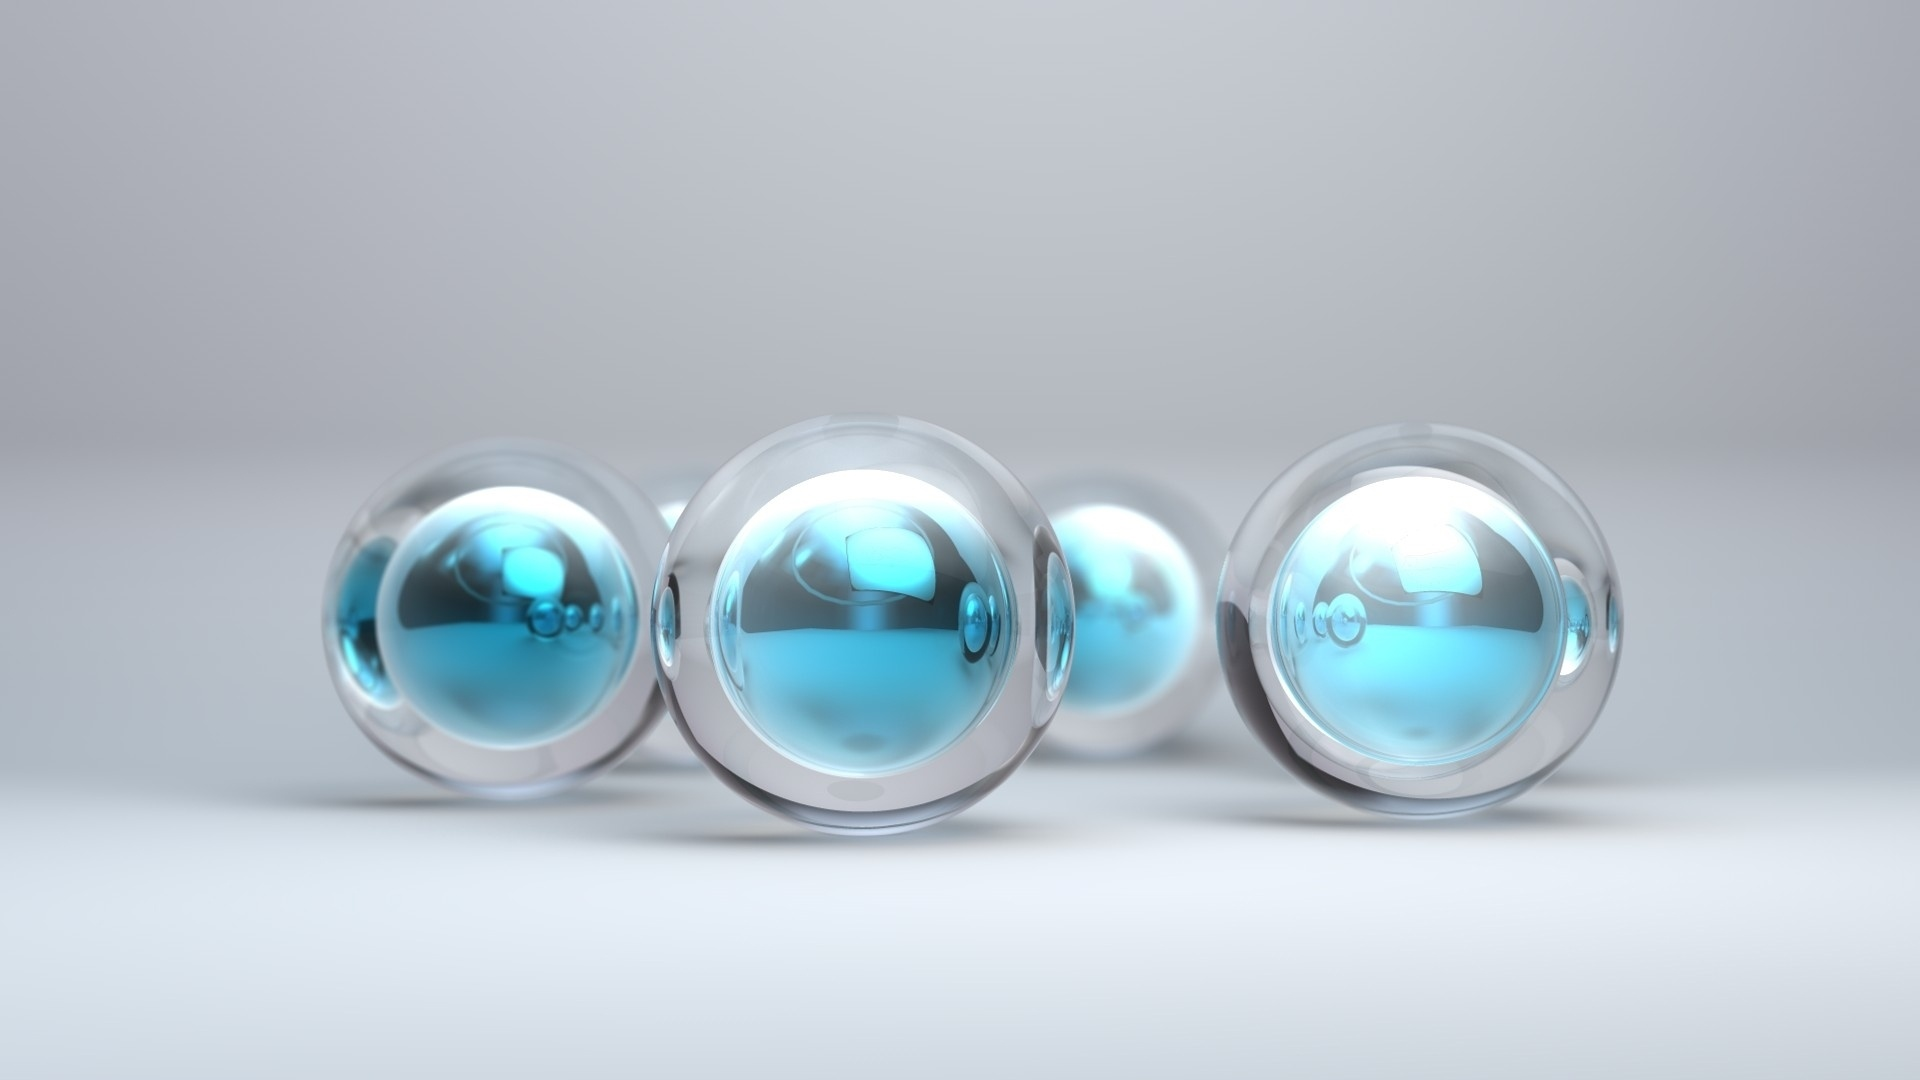 Ball Glass Desktop Wallpaper